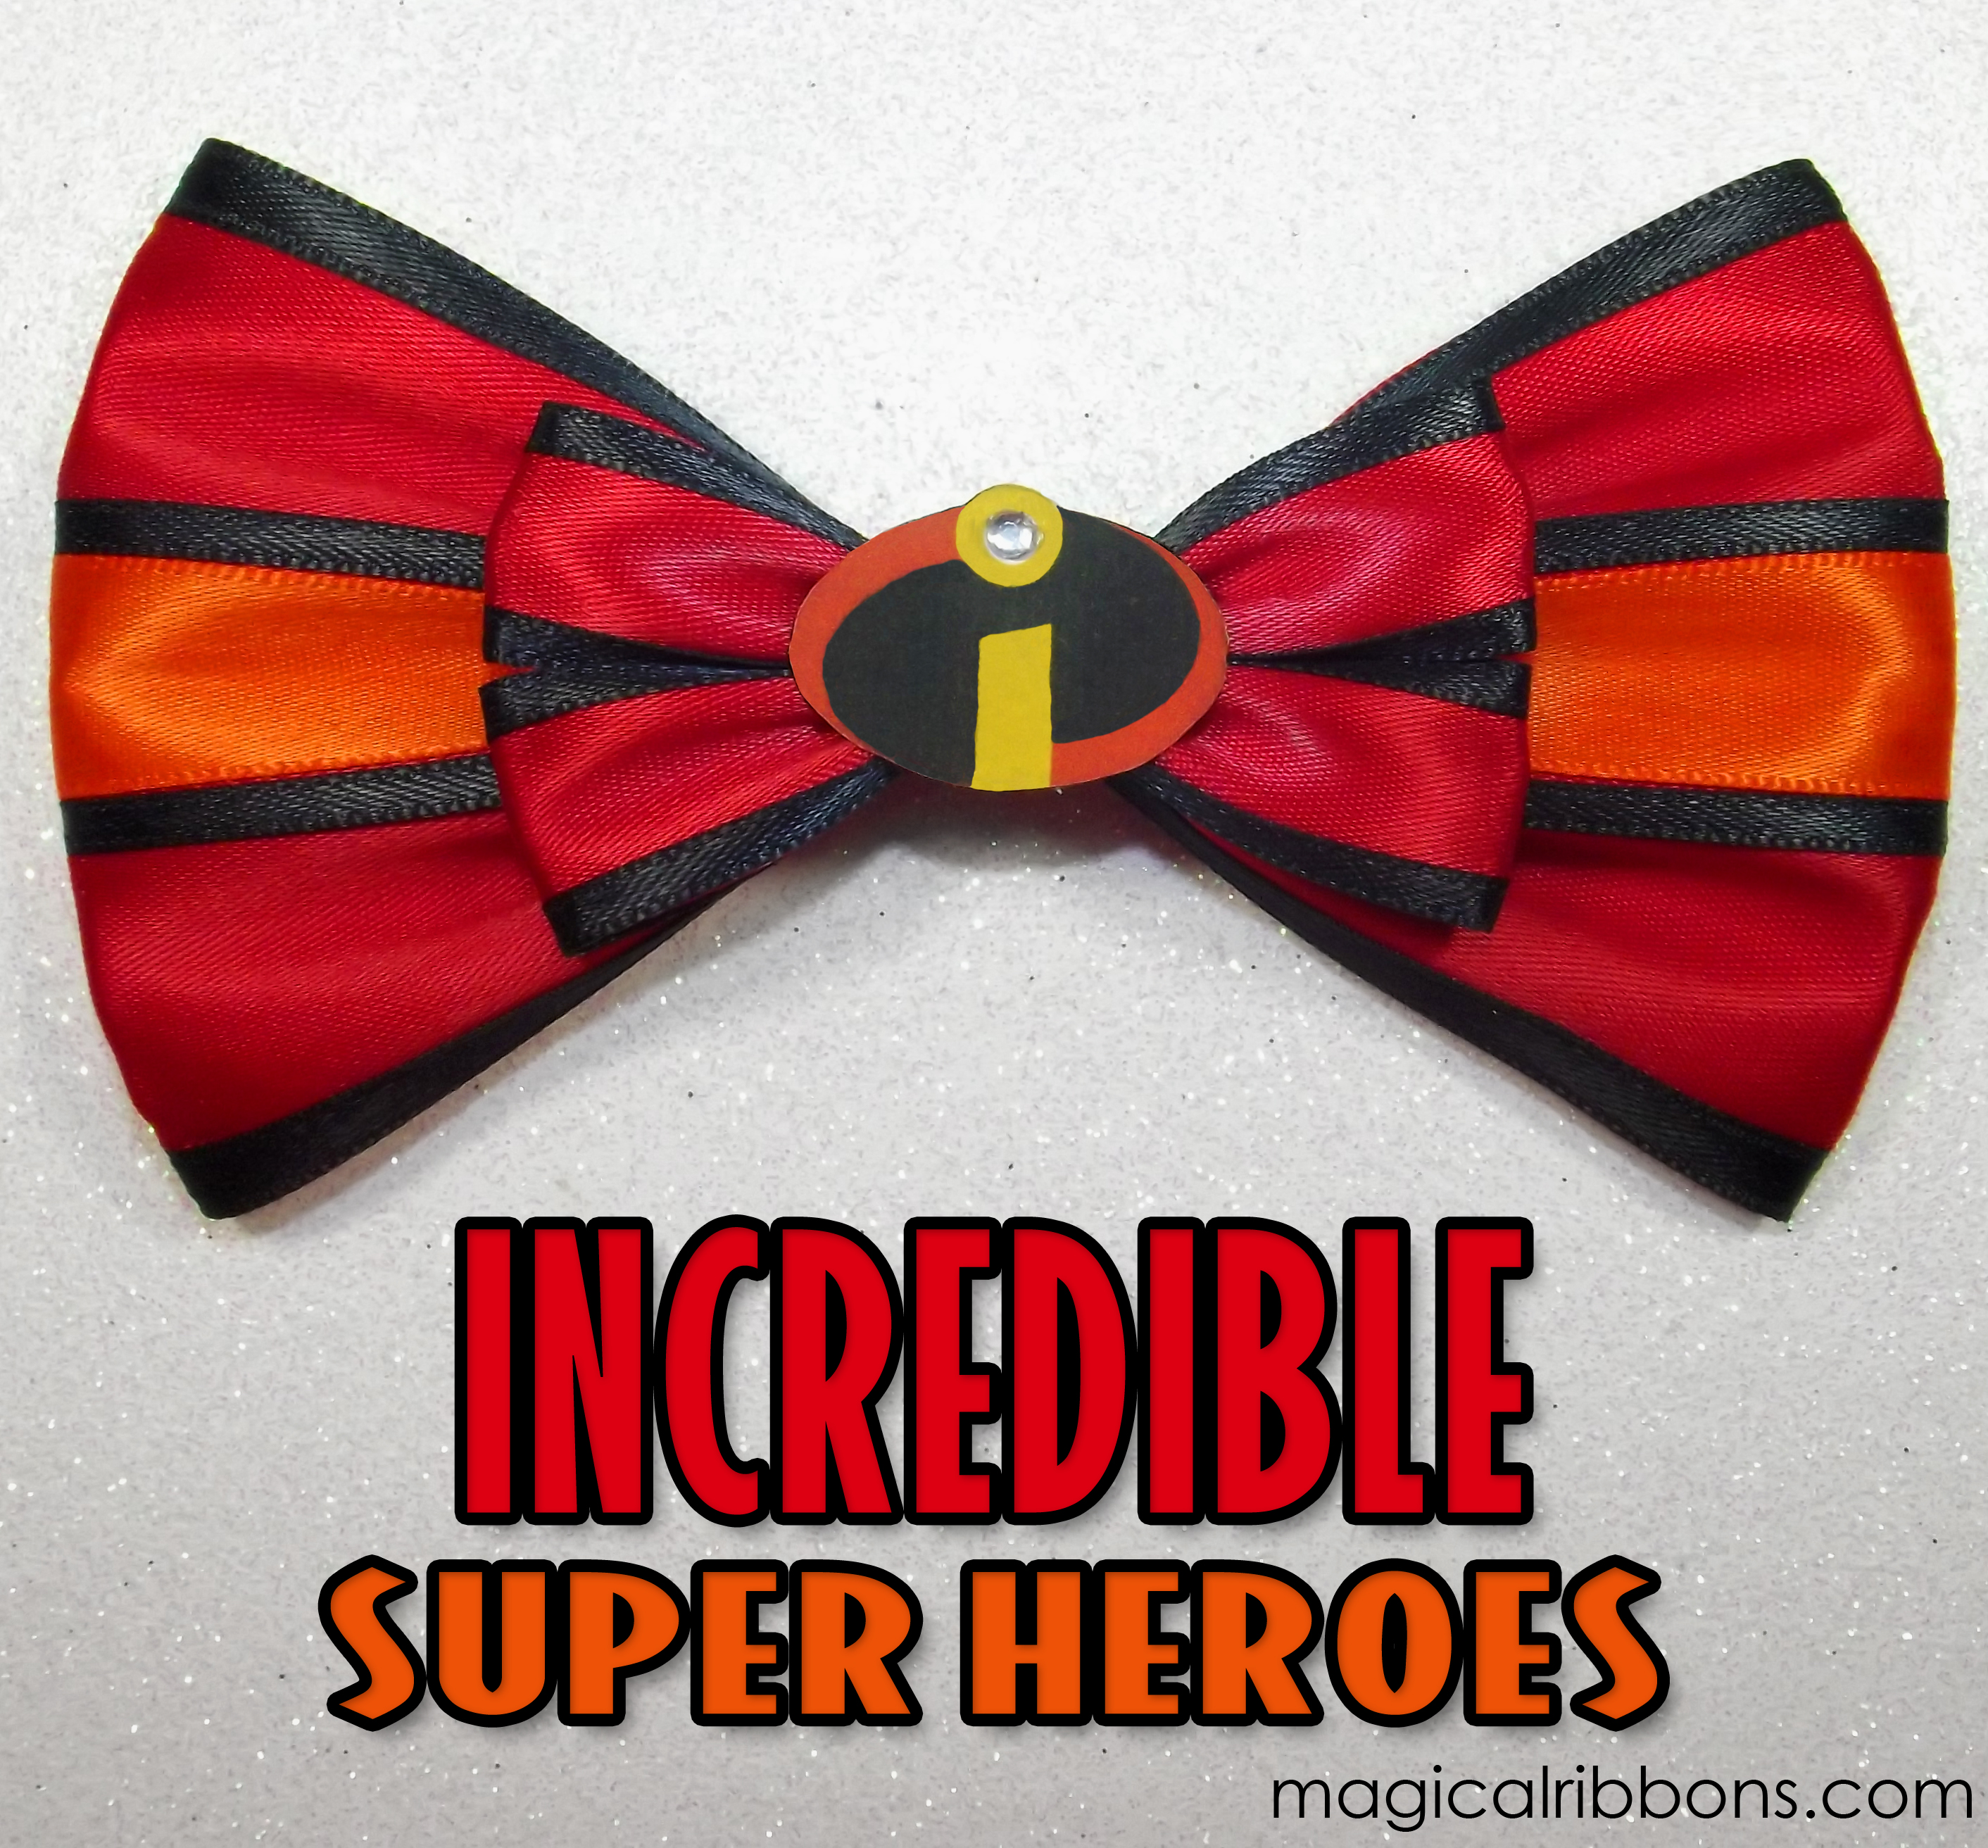 Incredible Super Heroes Bow